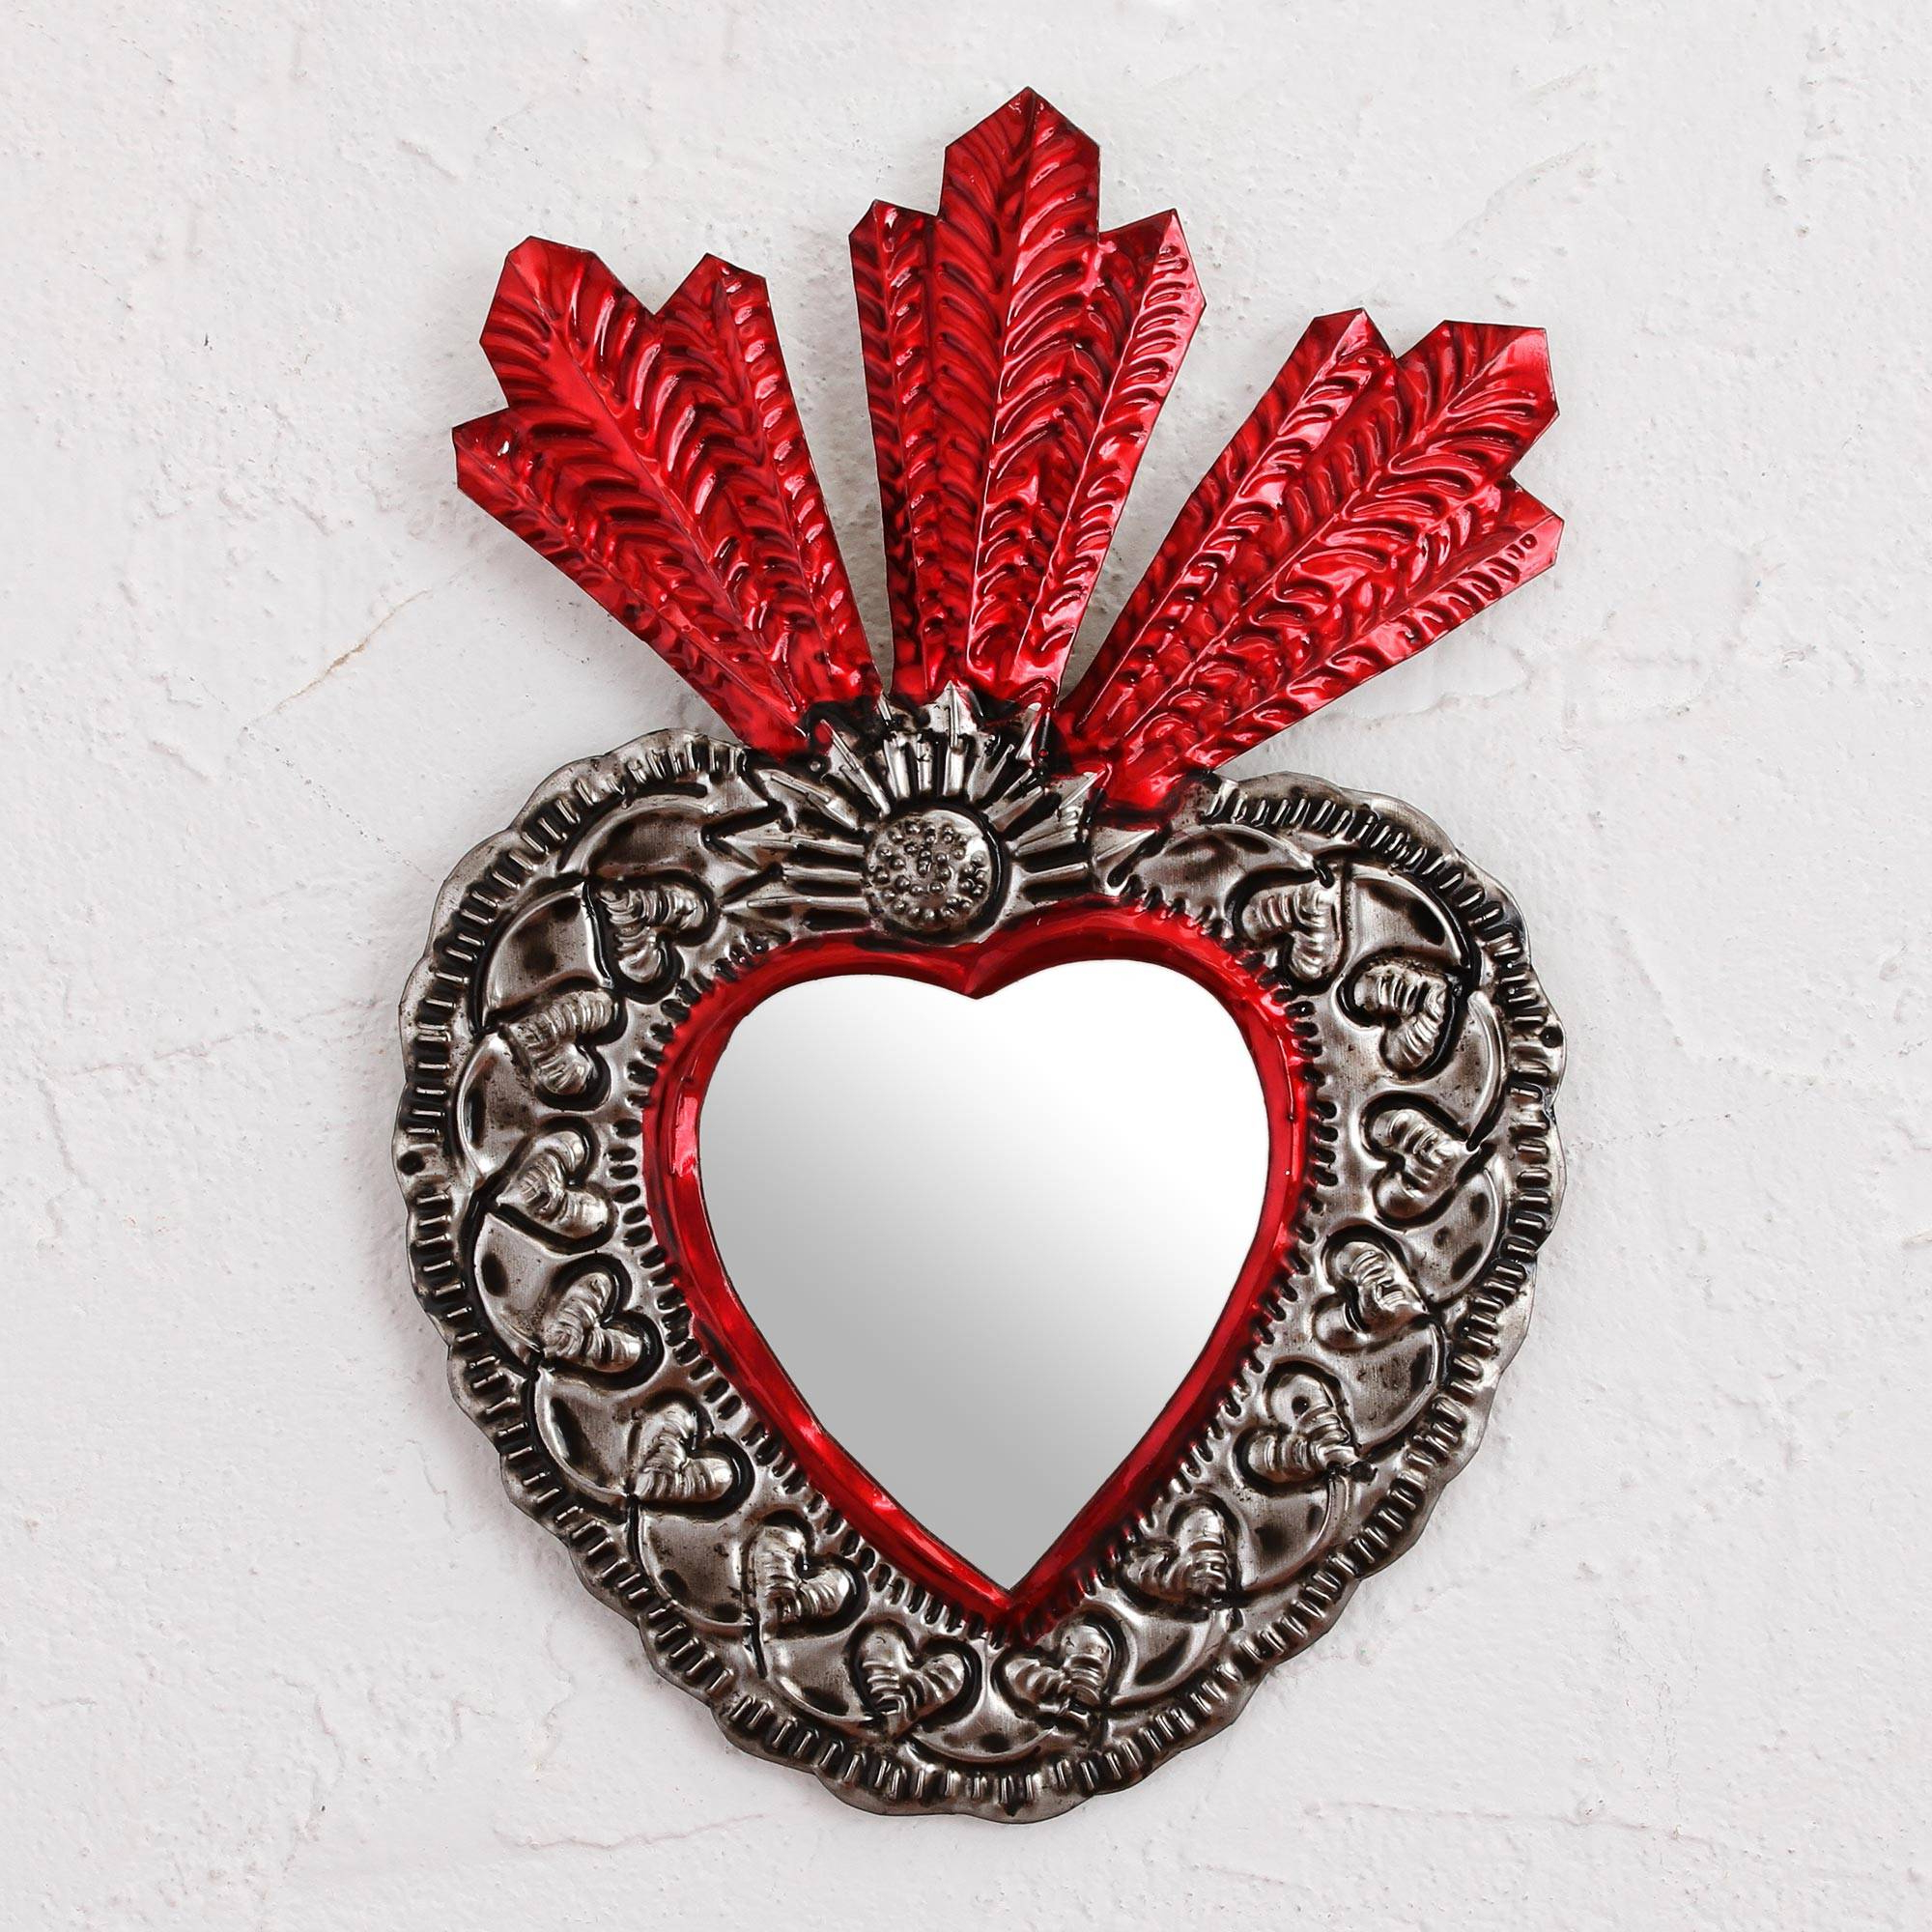 Heart Shaped Wall Mirrors With Regard To Trendy Handmade Heart Shaped Tin Wall Mirror From Mexico, 'my Heart's Reflection' (View 19 of 20)